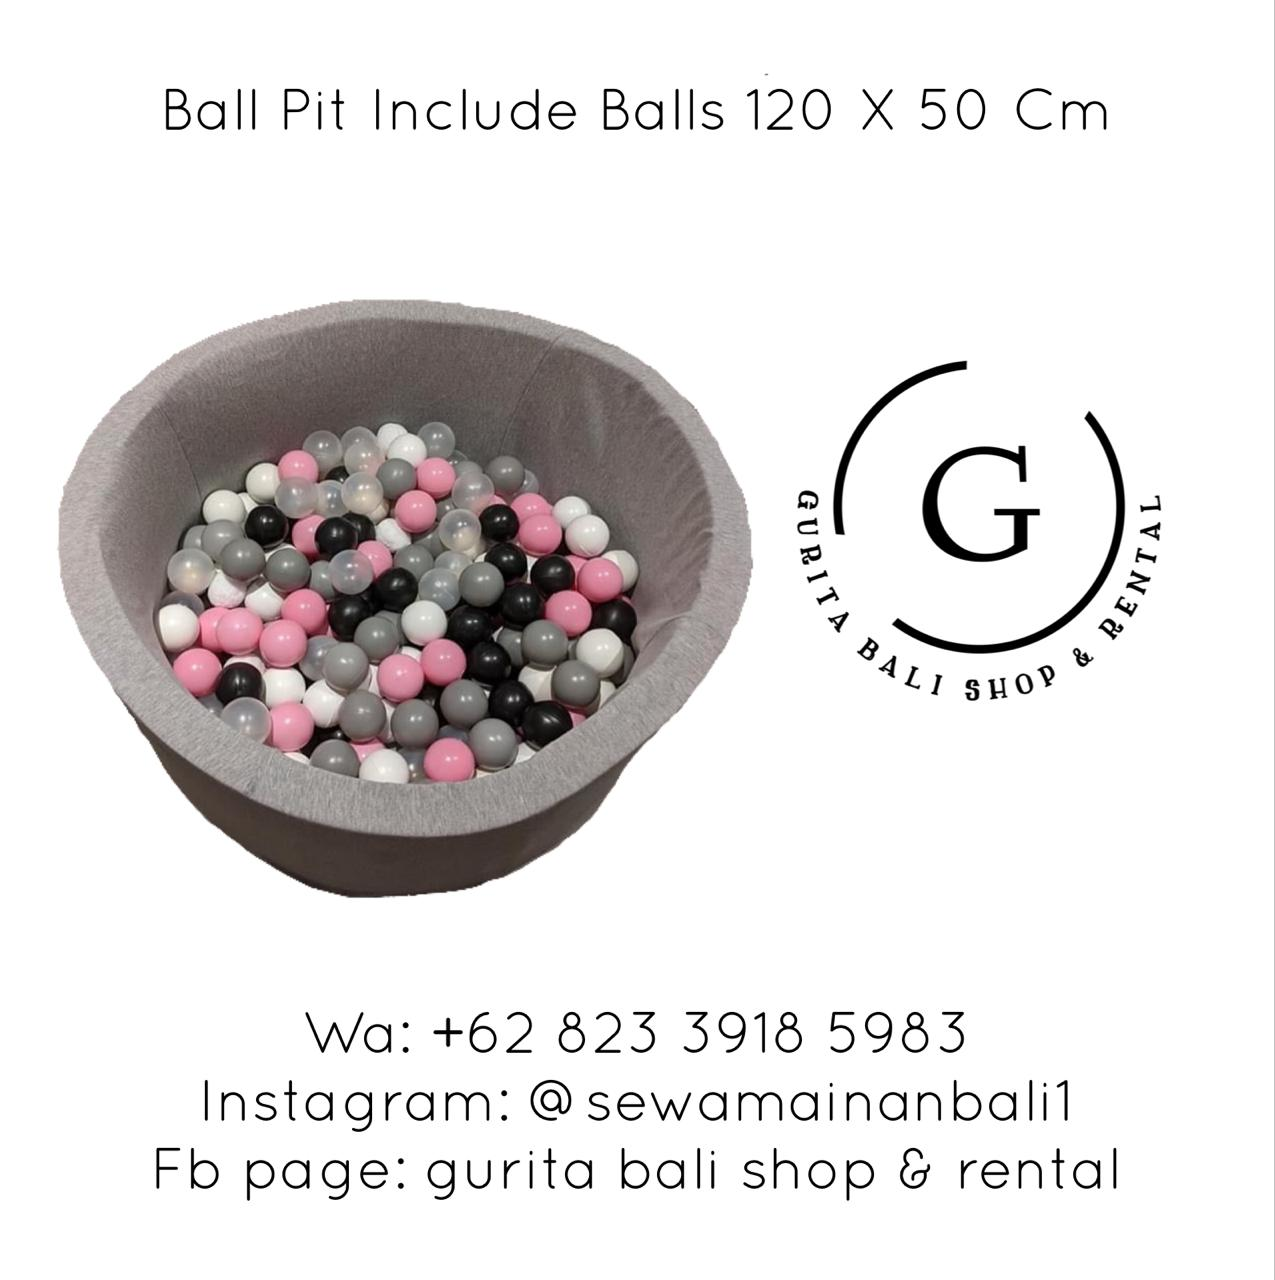 BALL PIT INCLUDE BALLS